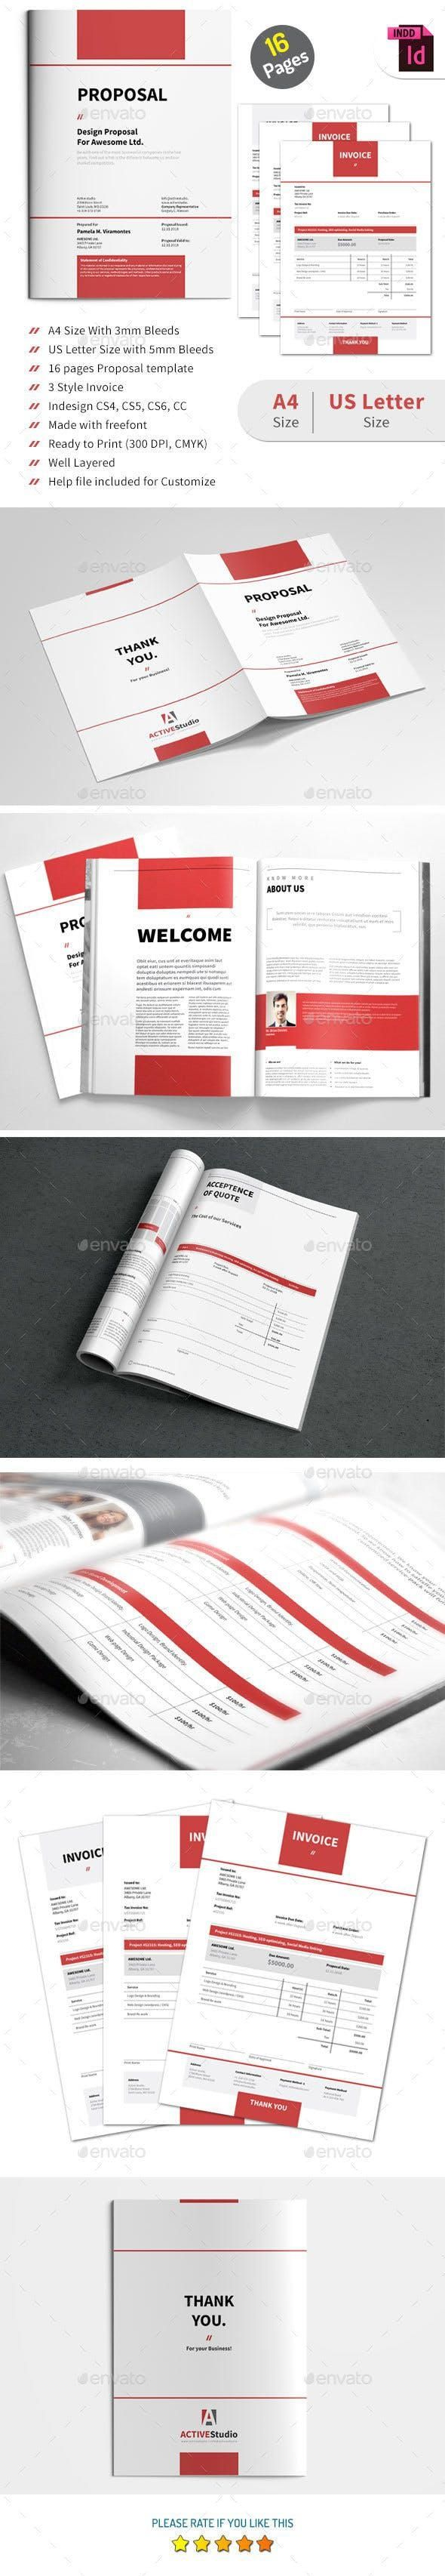 Proposal Invoice Design Template Invoice Design Presentation Design Template